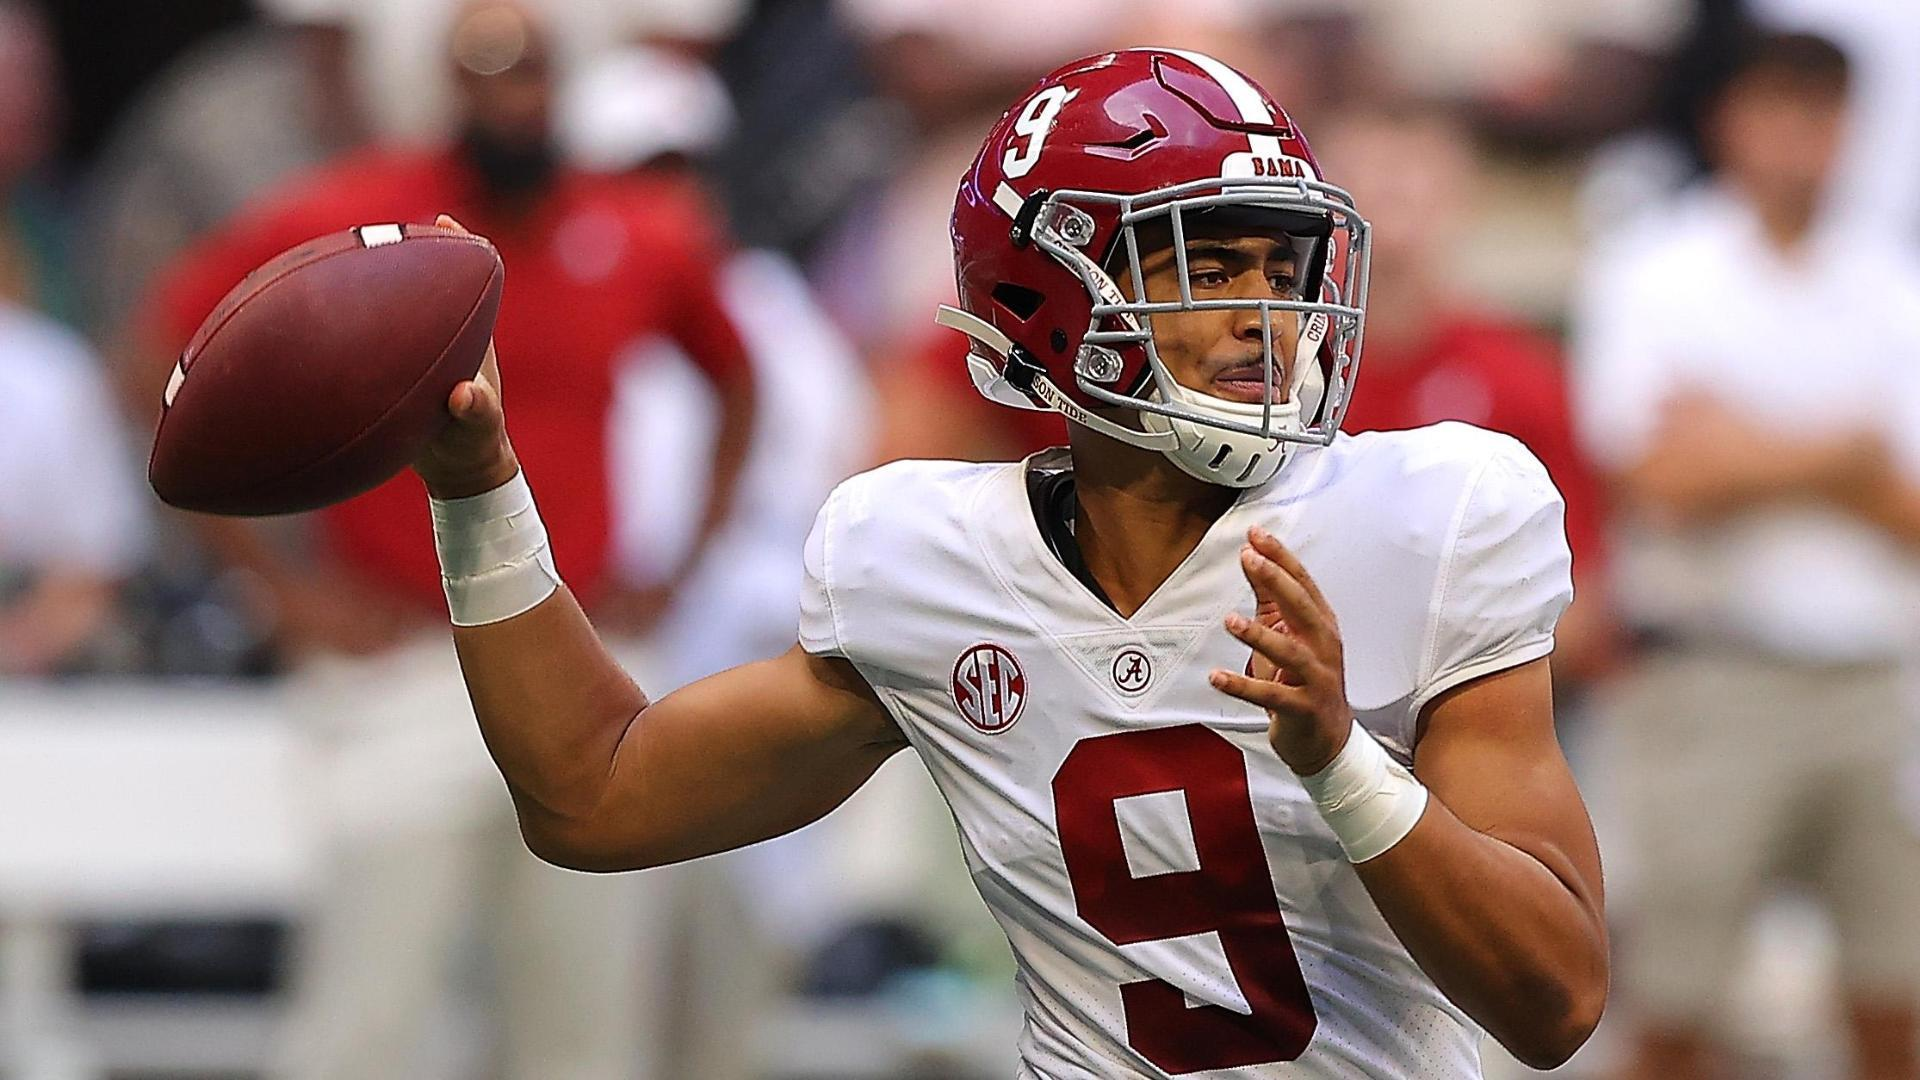 Bryce Young lights it up with 4 TDs in Bama's big win